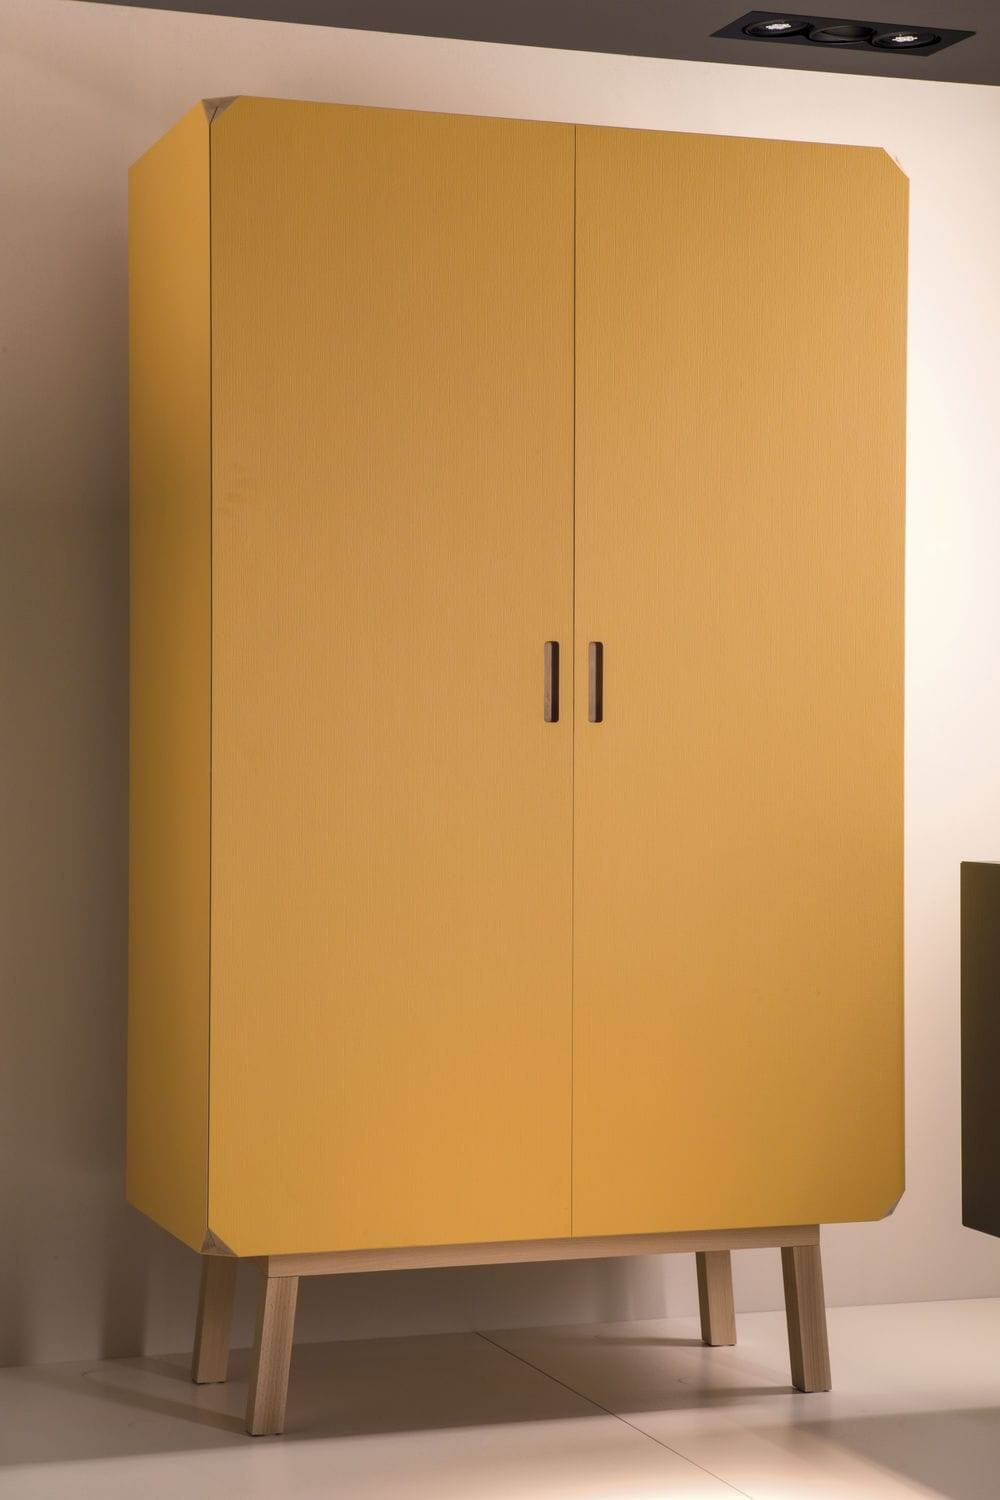 High Sideboard / Contemporary / Beech / Yellow - Cartalegno intended for Beech Sideboards (Image 16 of 30)